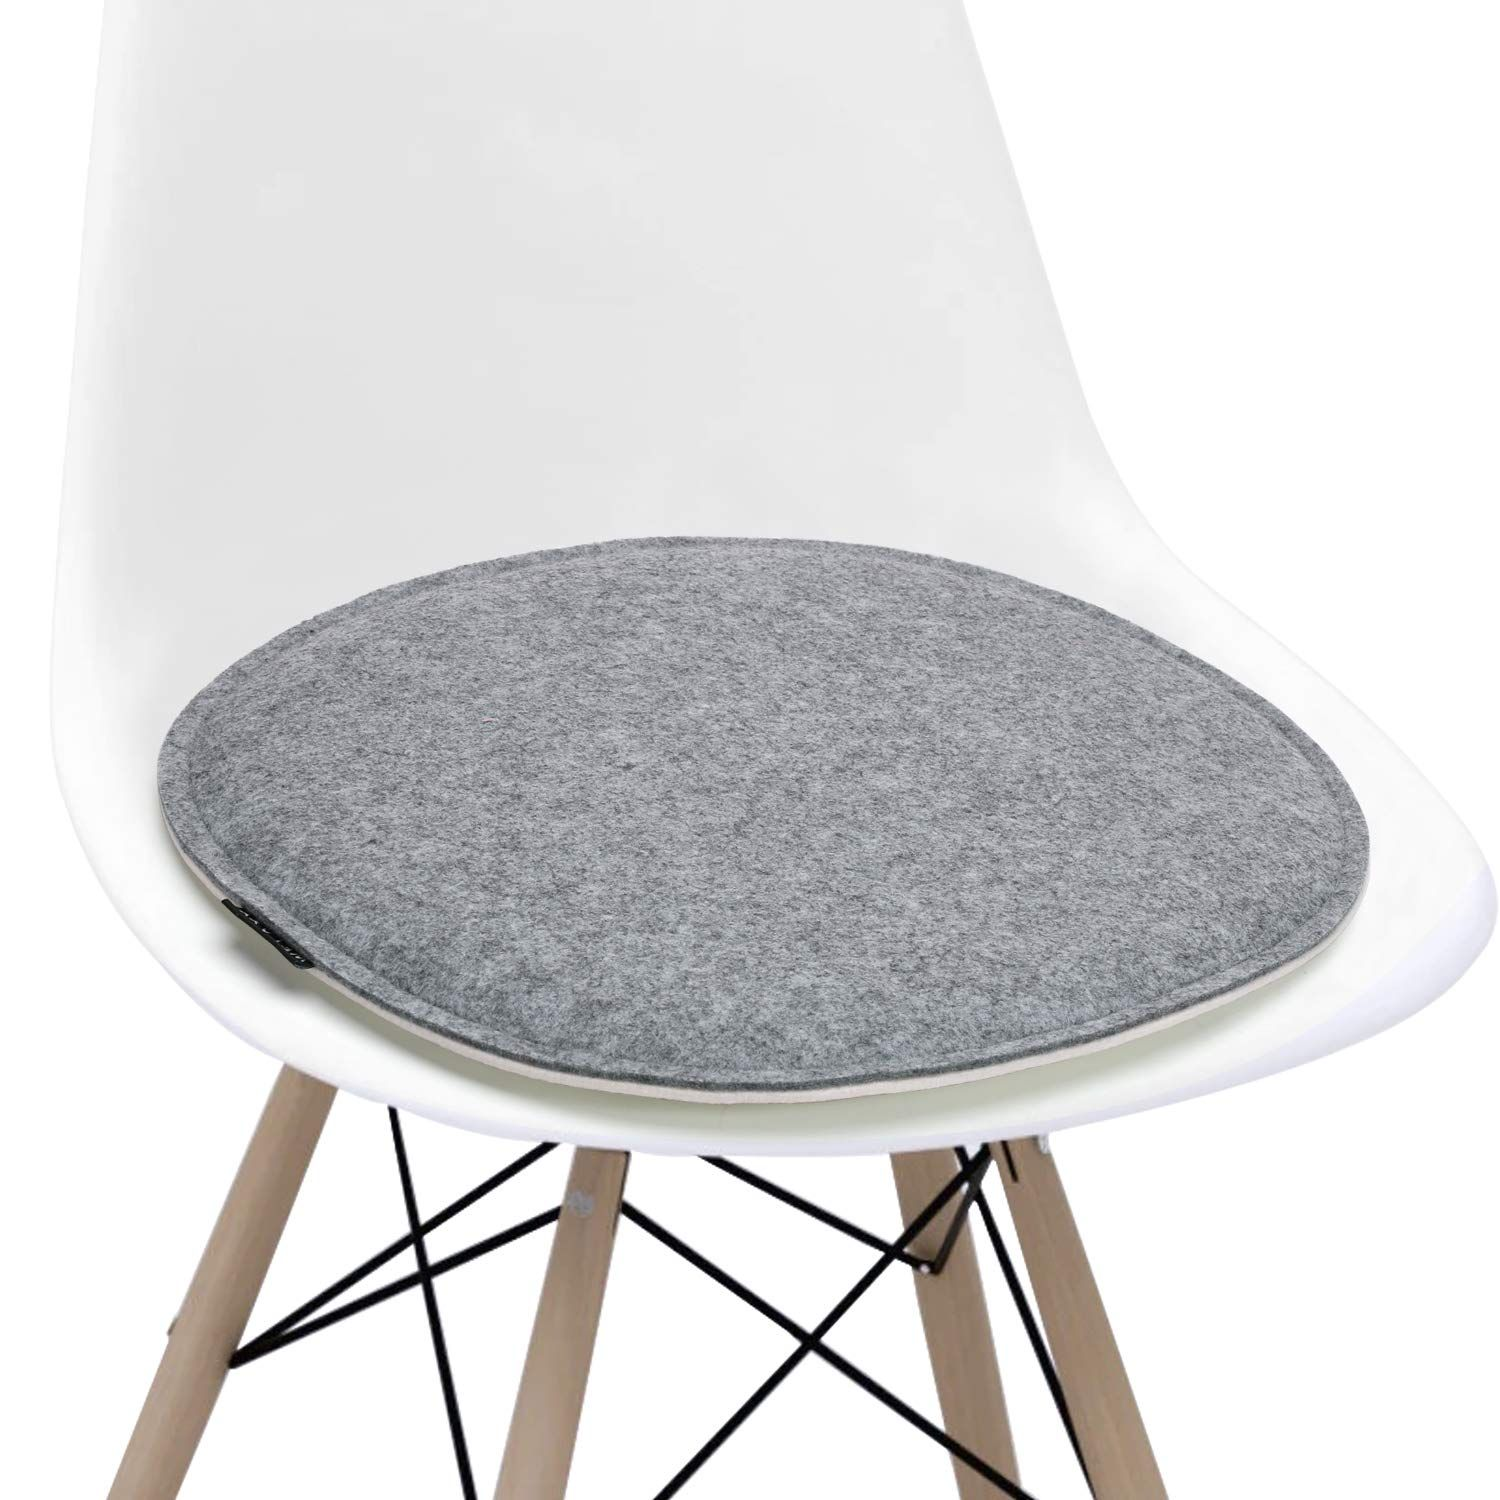 Welaxy Felt Chair Pads Seat Cushion For Eames Chair Dsw Plastic